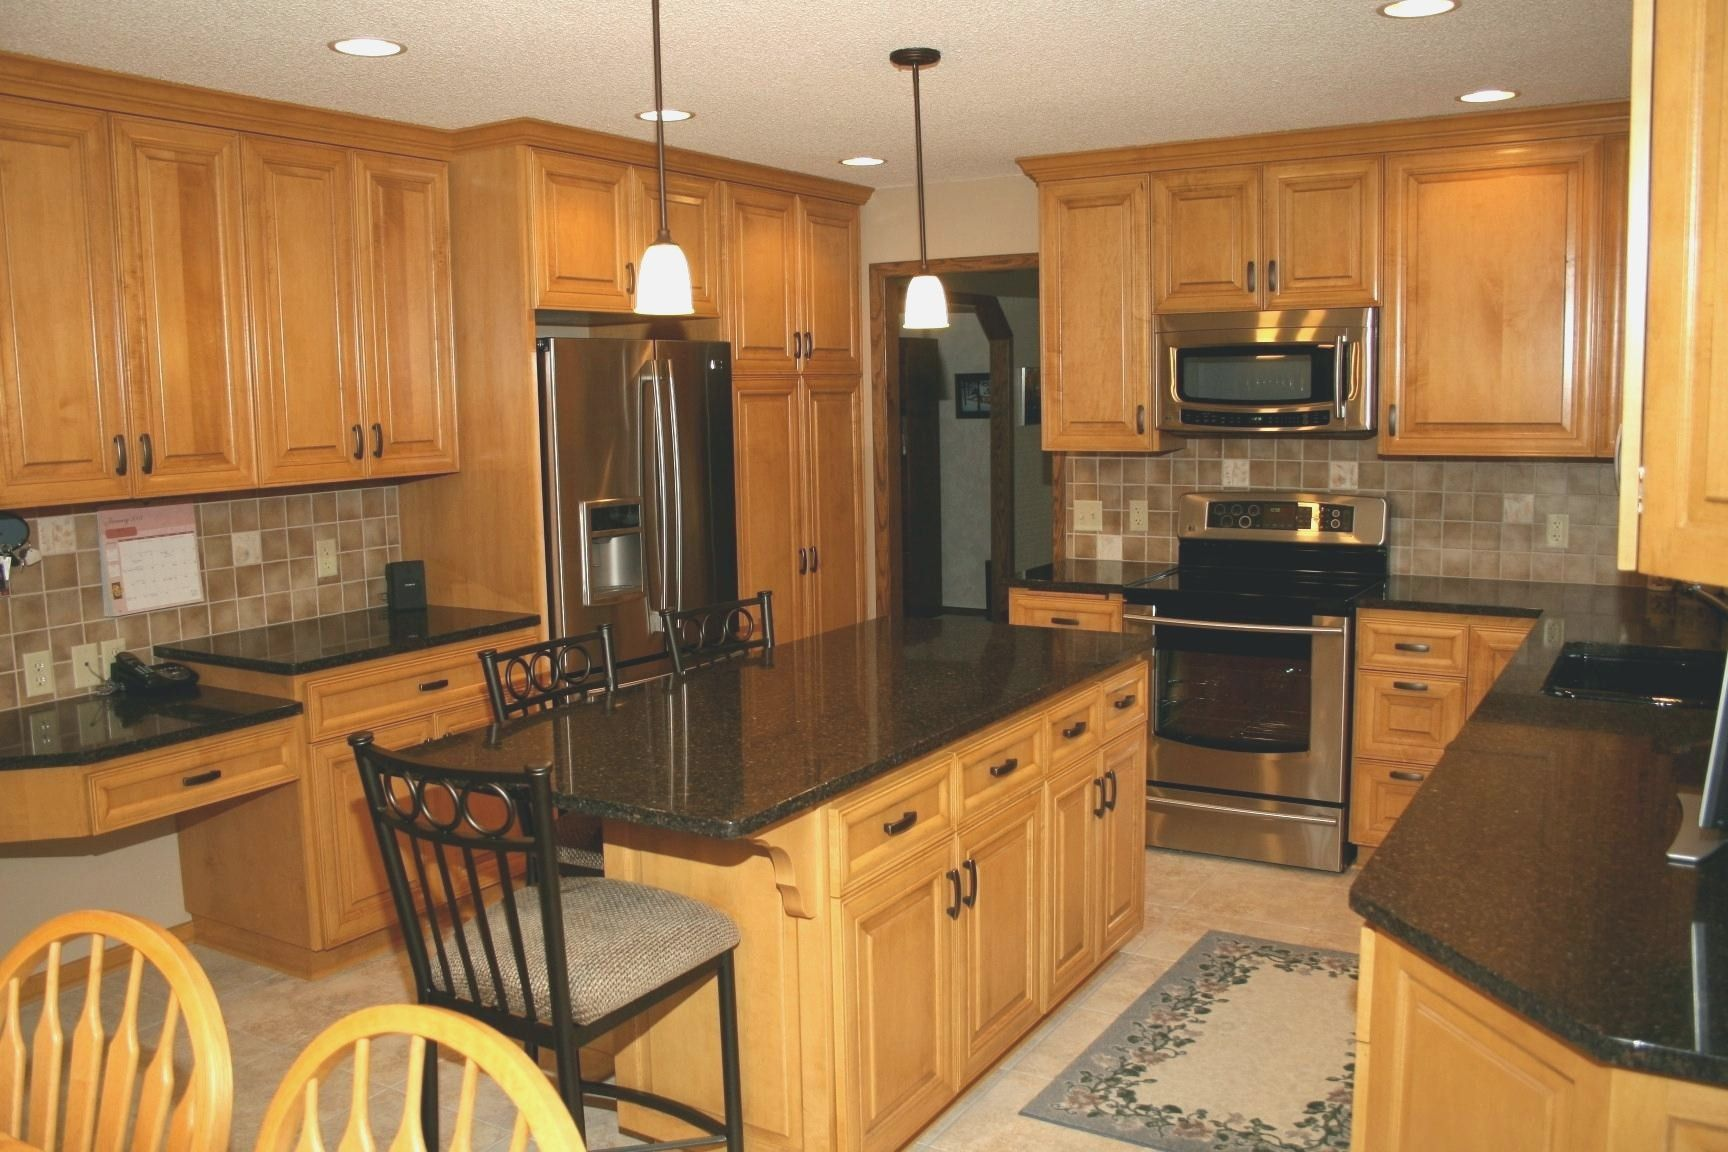 Kitchen Paint Colors with Maple Cabinets | Maple kitchen ... on What Color Backsplash With Maple Cabinets  id=11386